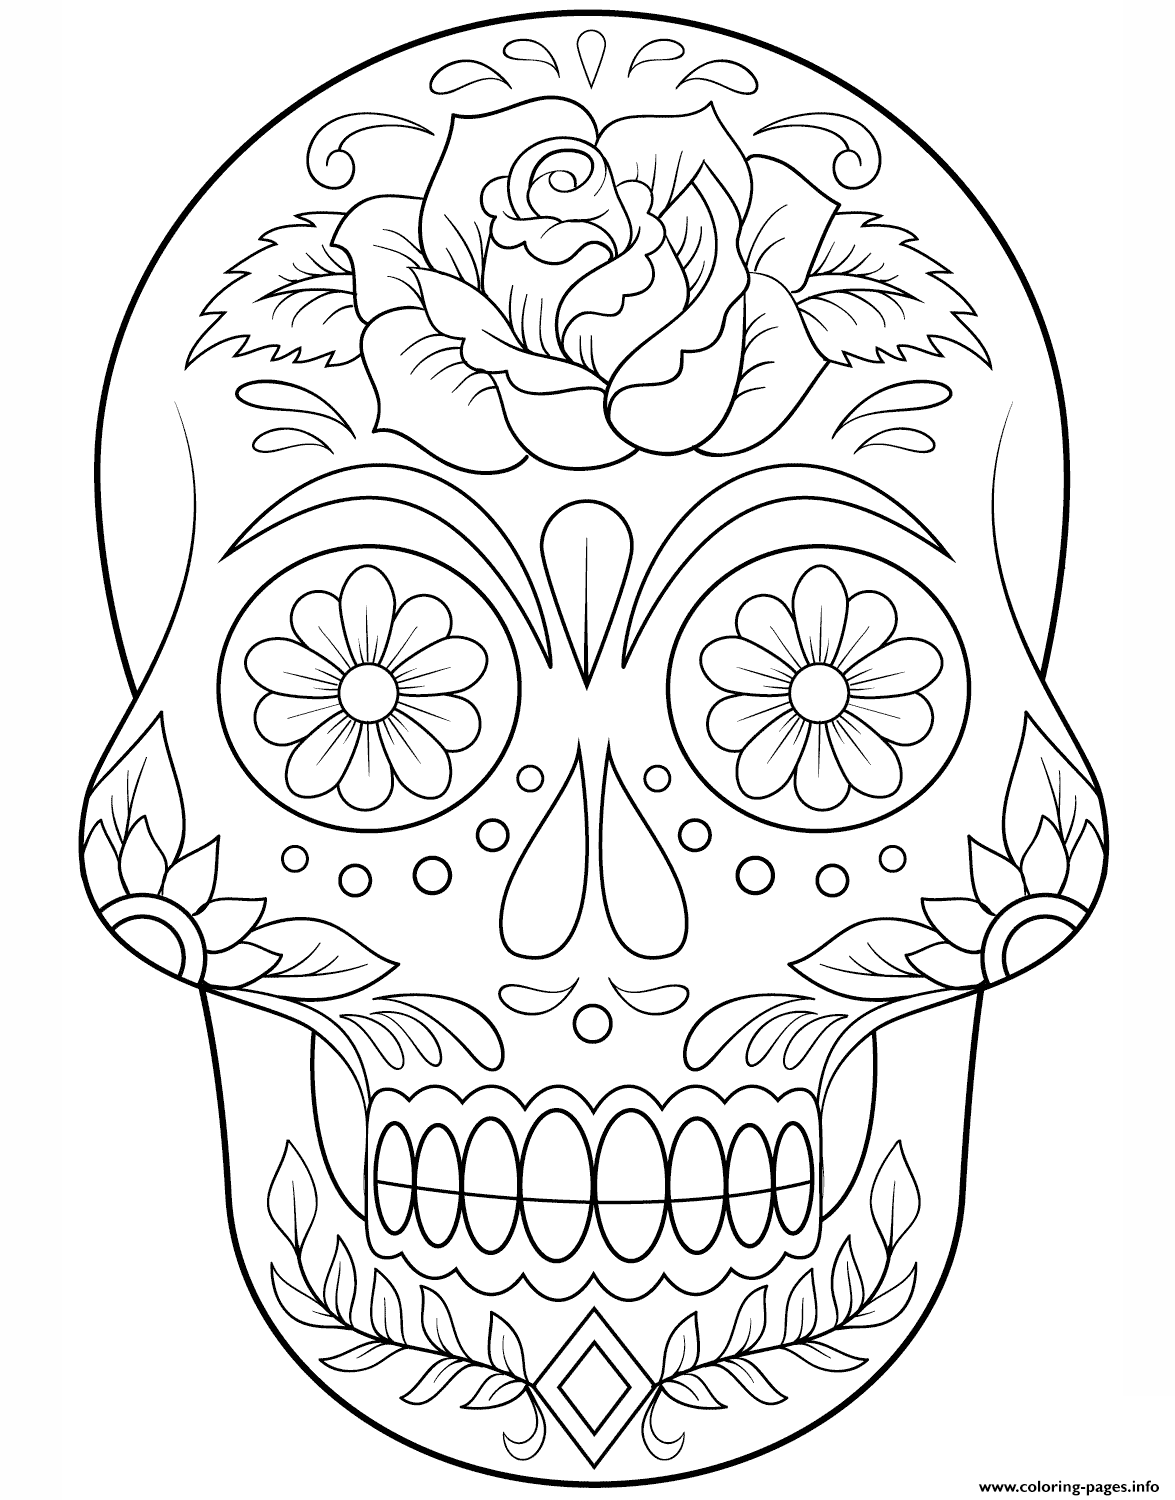 coloring star wars sugar skull sugar skull with mustache calavera coloring pages printable skull star coloring wars sugar